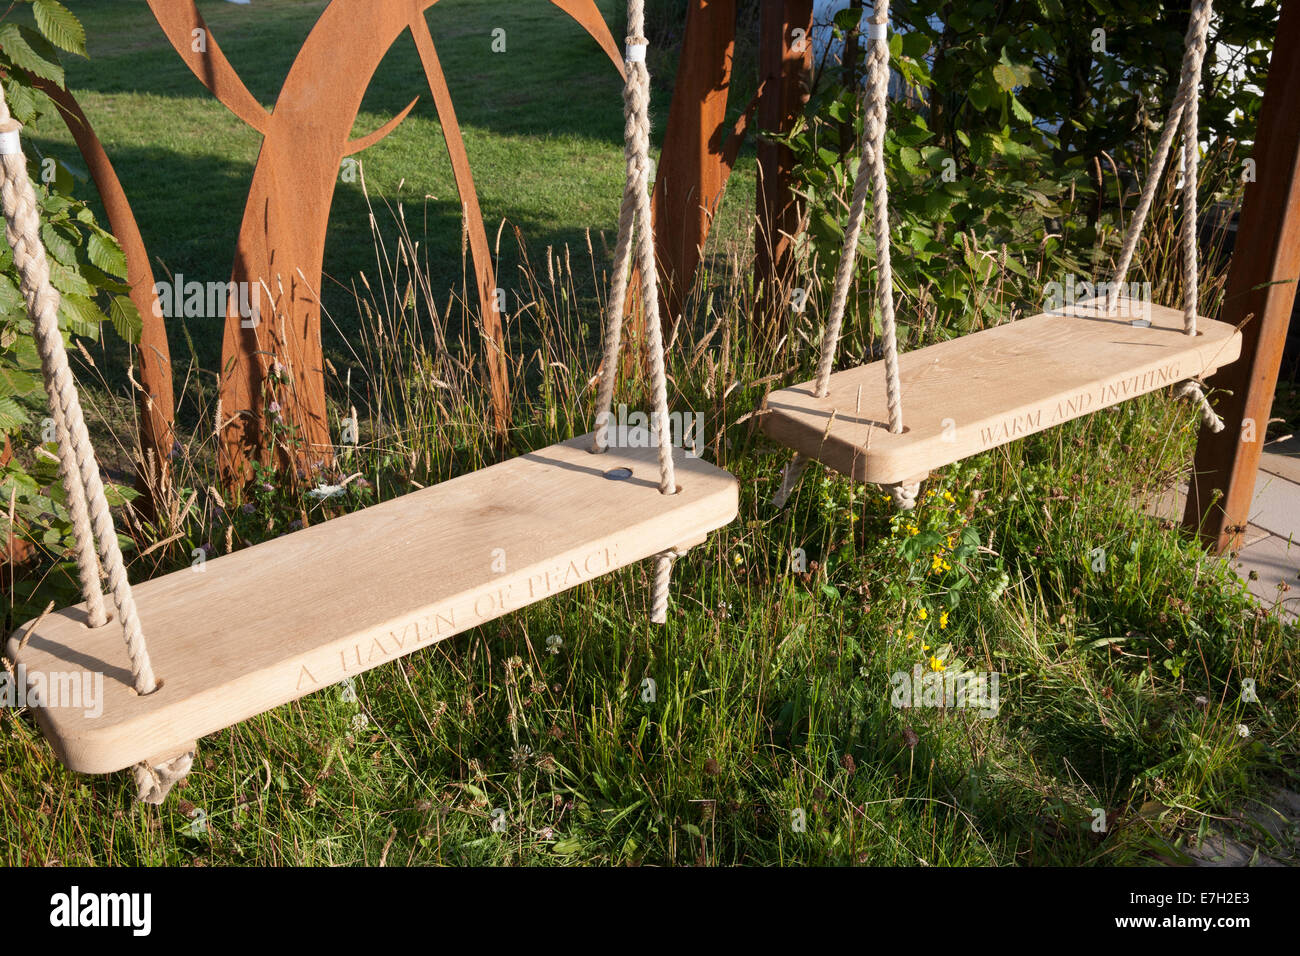 Swing Seating Stock Photos & Swing Seating Stock Images - Alamy